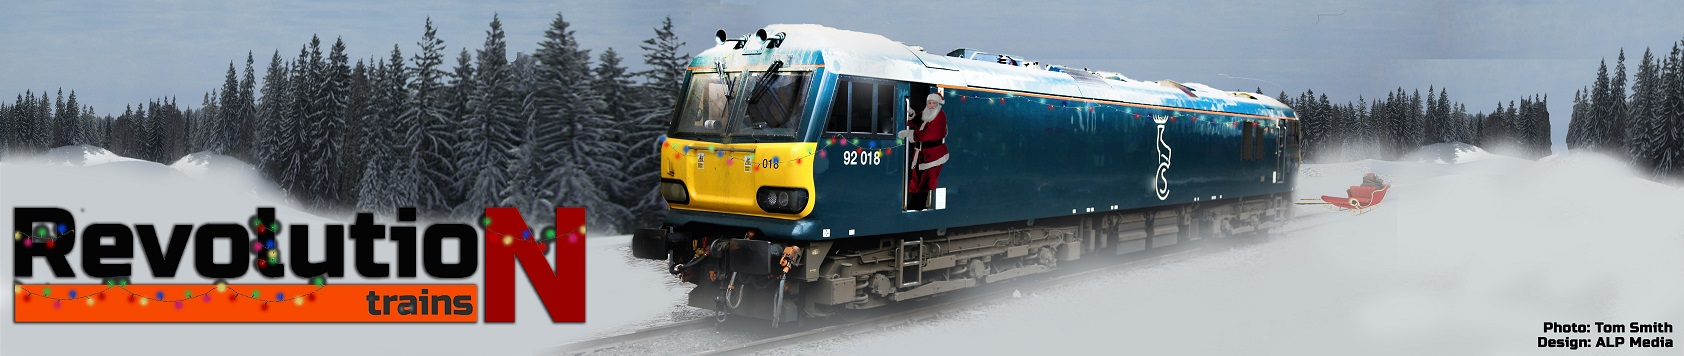 Merry Christmas from Revolution Trains